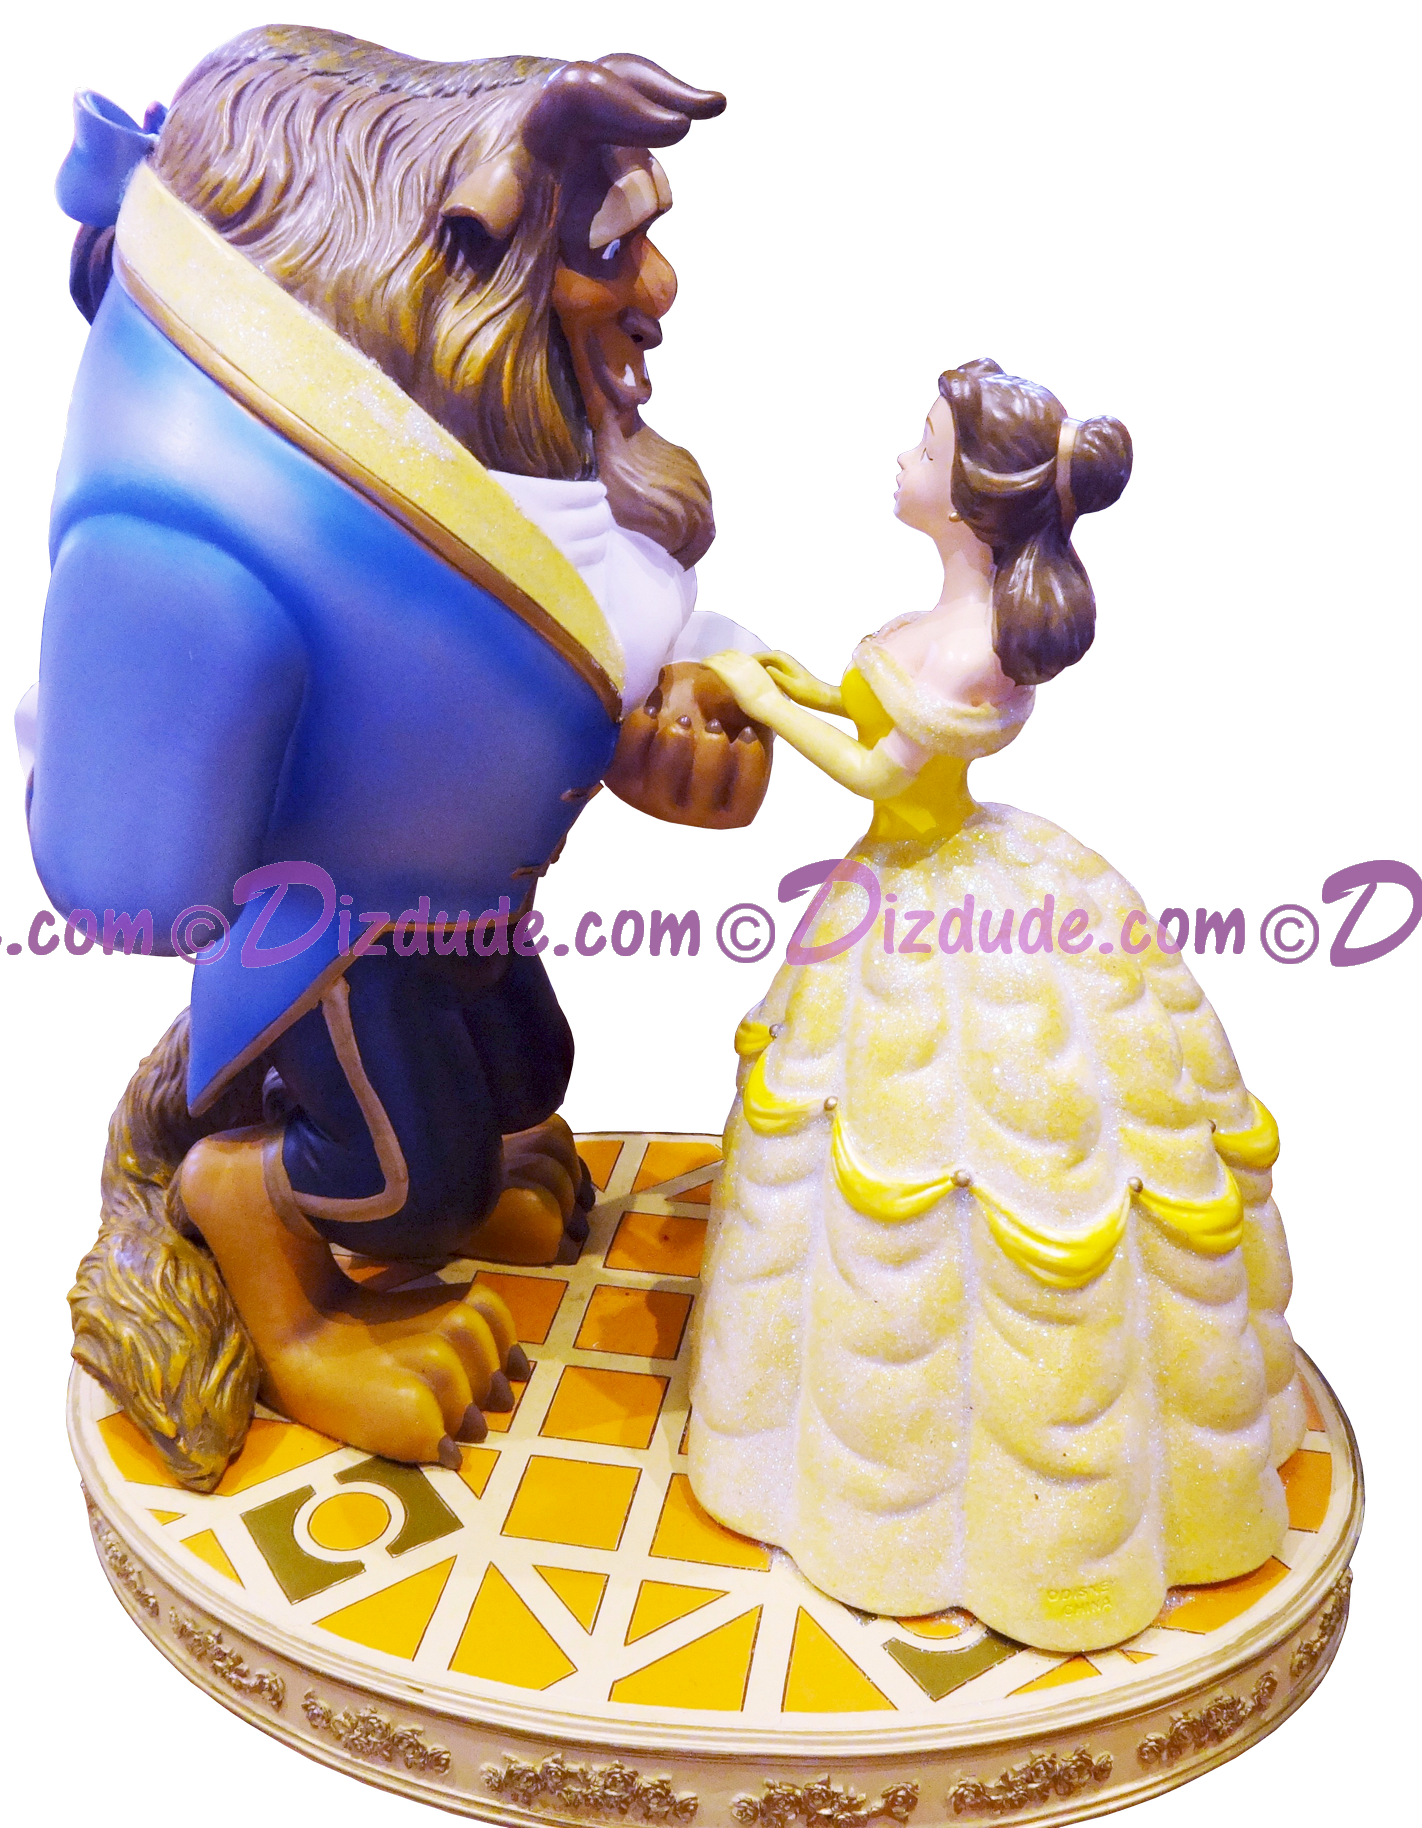 Beauty and the Beast ~ Disney Medium Big Figure - By Monty Maldovan © Dizdude.com